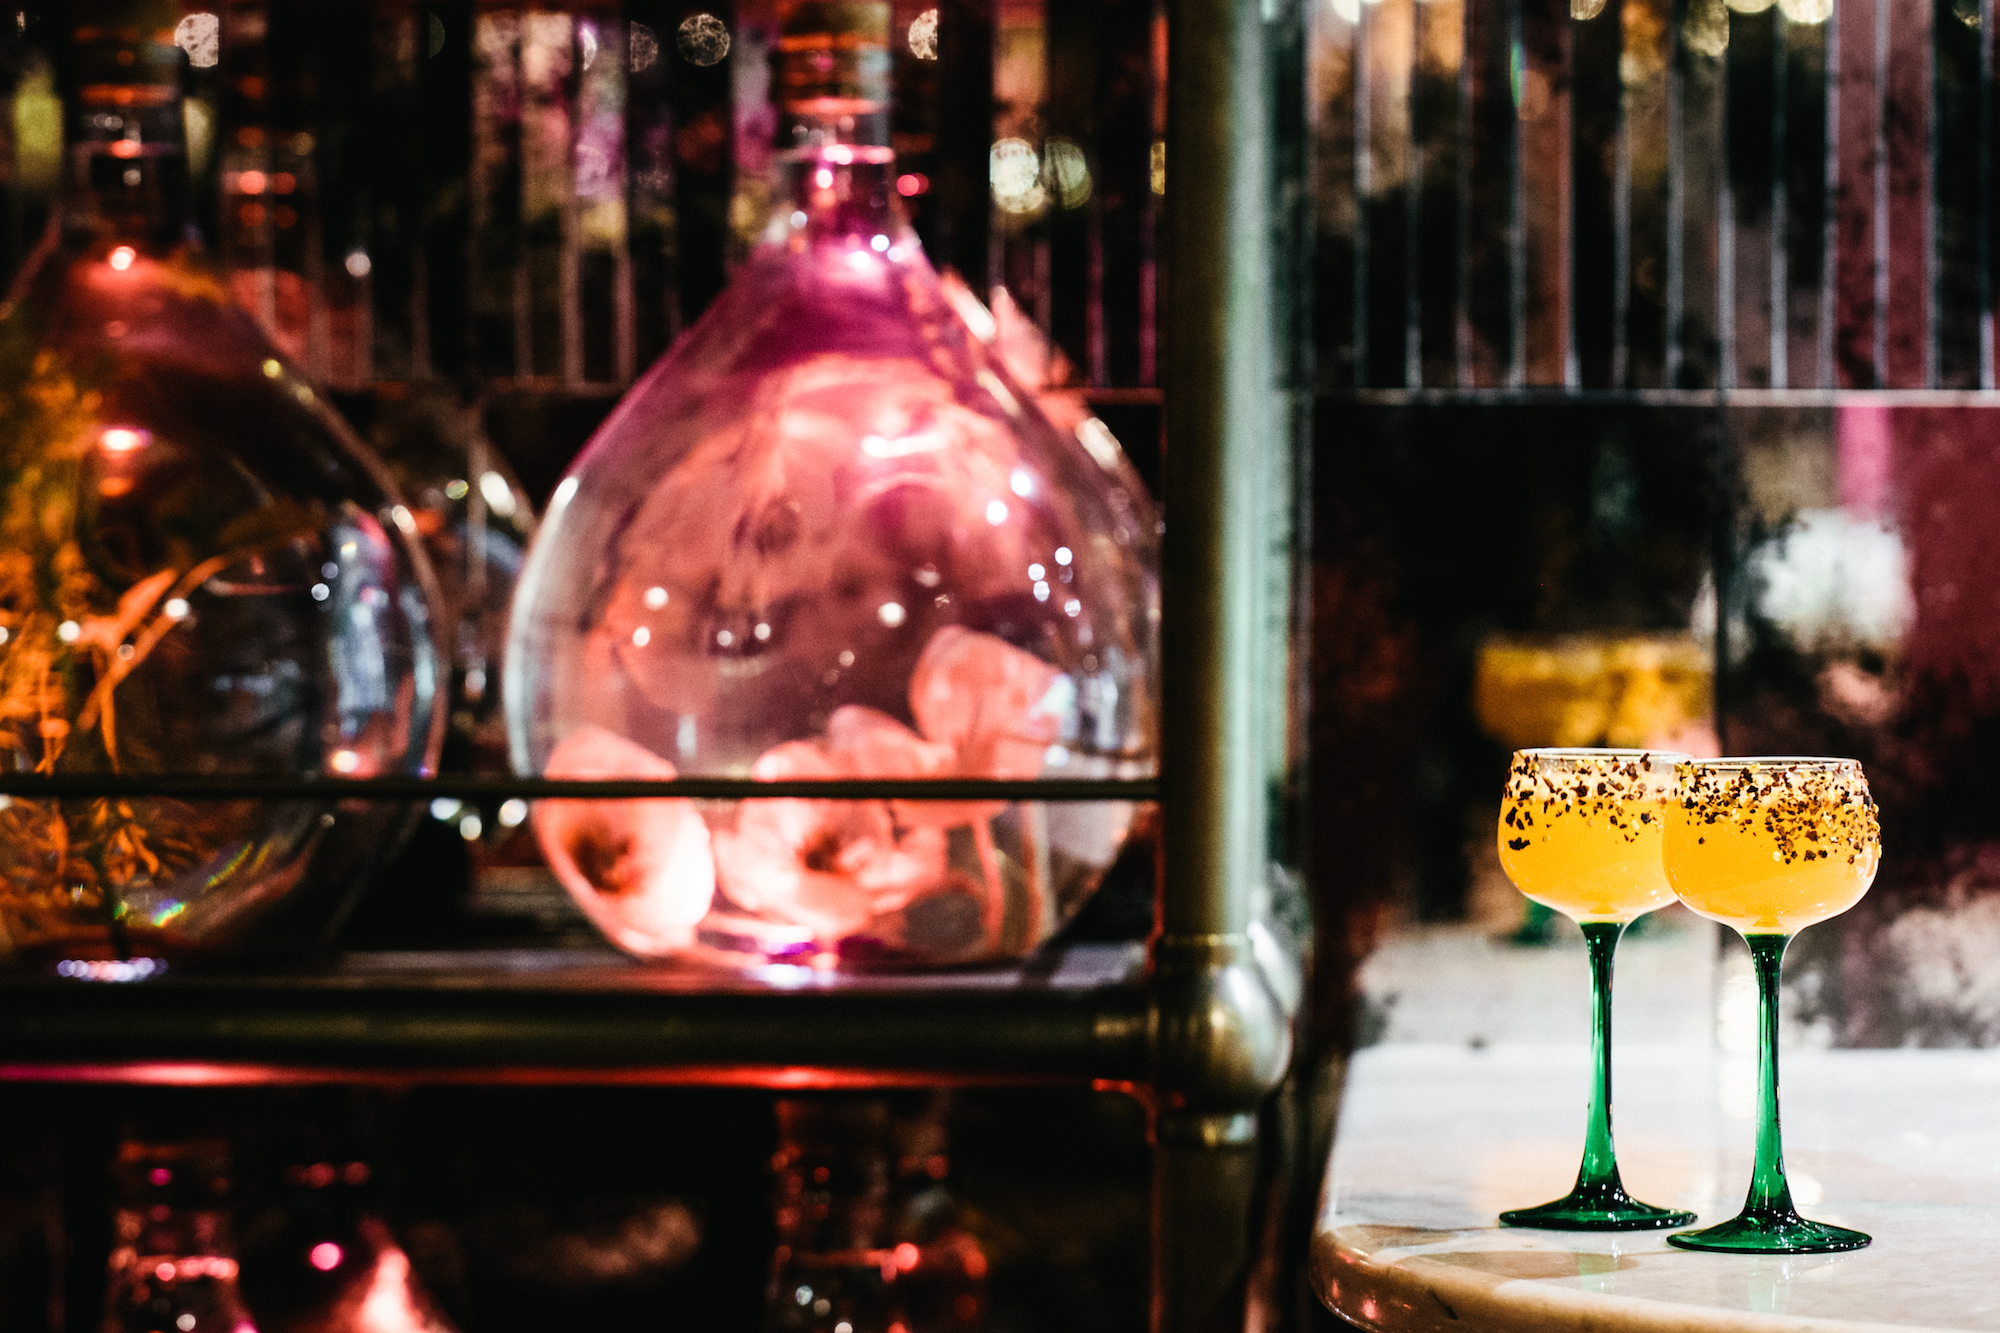 The Big Mamma Group offers Trendy, Fresh, Authentic Italian Dining in Paris as well as creative cocktails with fermented fruit in big rounded glass vats, like in the two glasses on the counter with green stems.